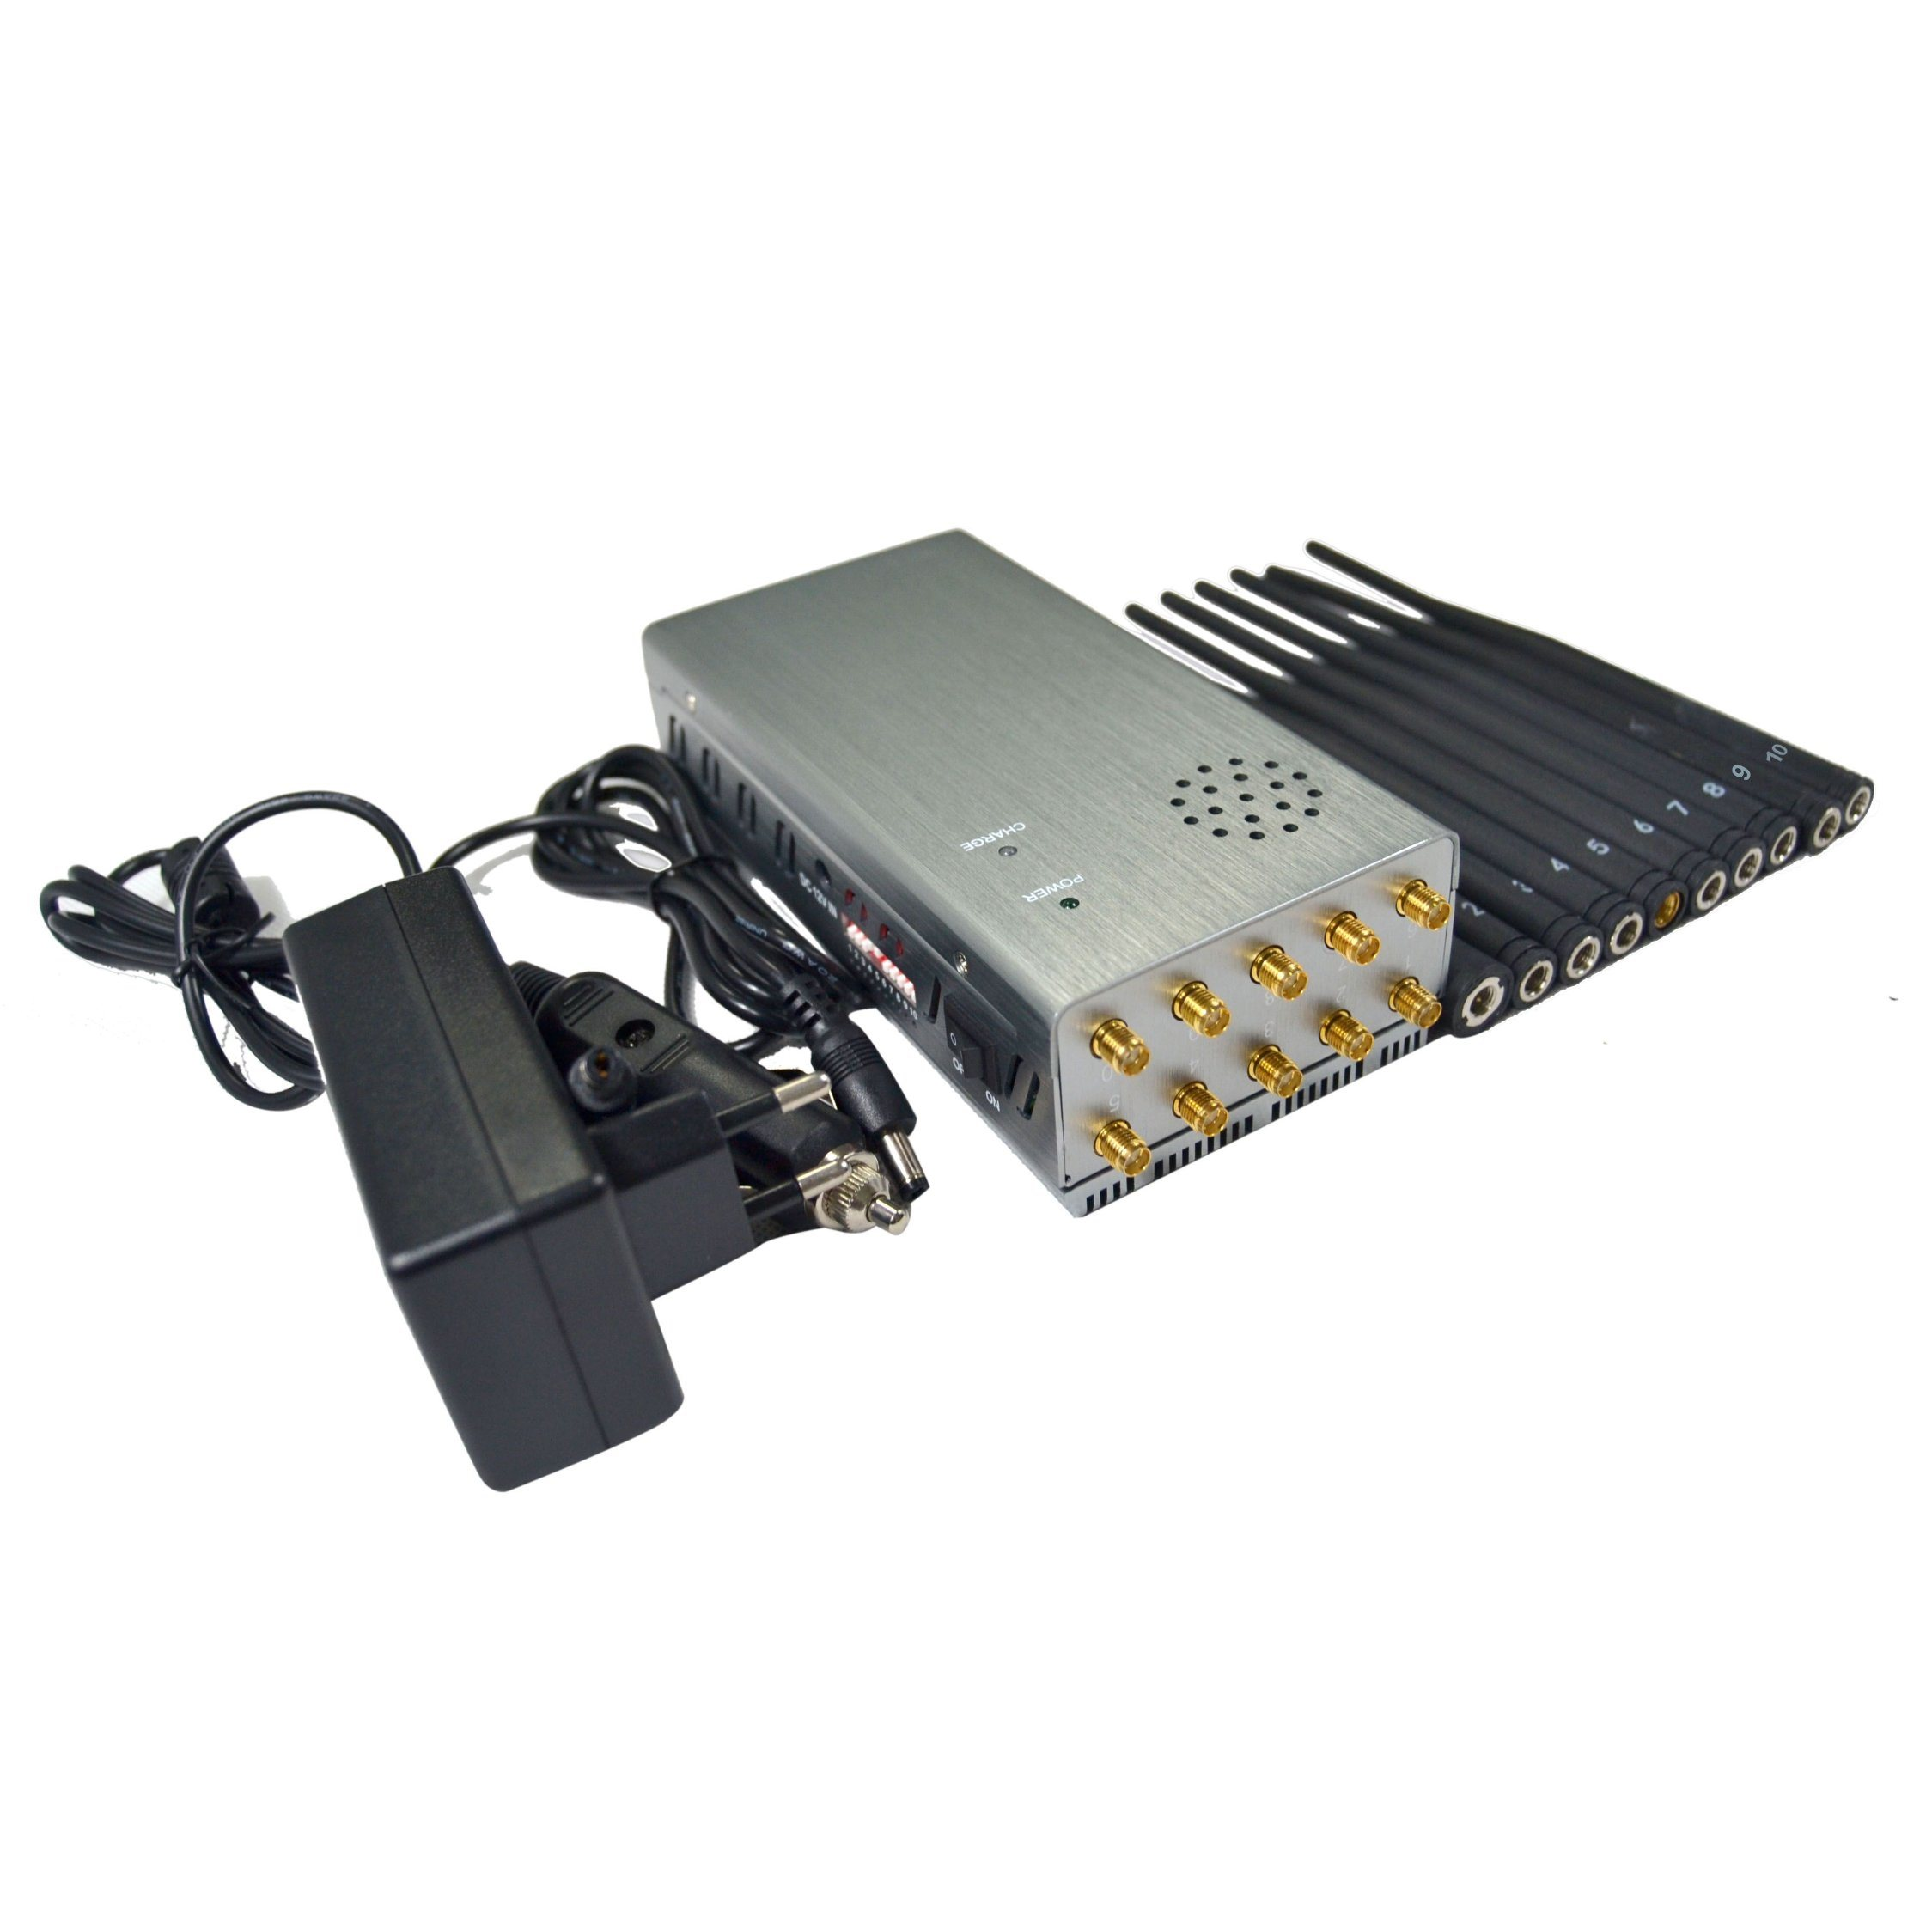 China Full Band Pocket Jammer with 8000mA Attery Long Working Time Satify Your Outdoor Working Requirements - China Mobile Phone Jammer, Full Band Signal Blockers